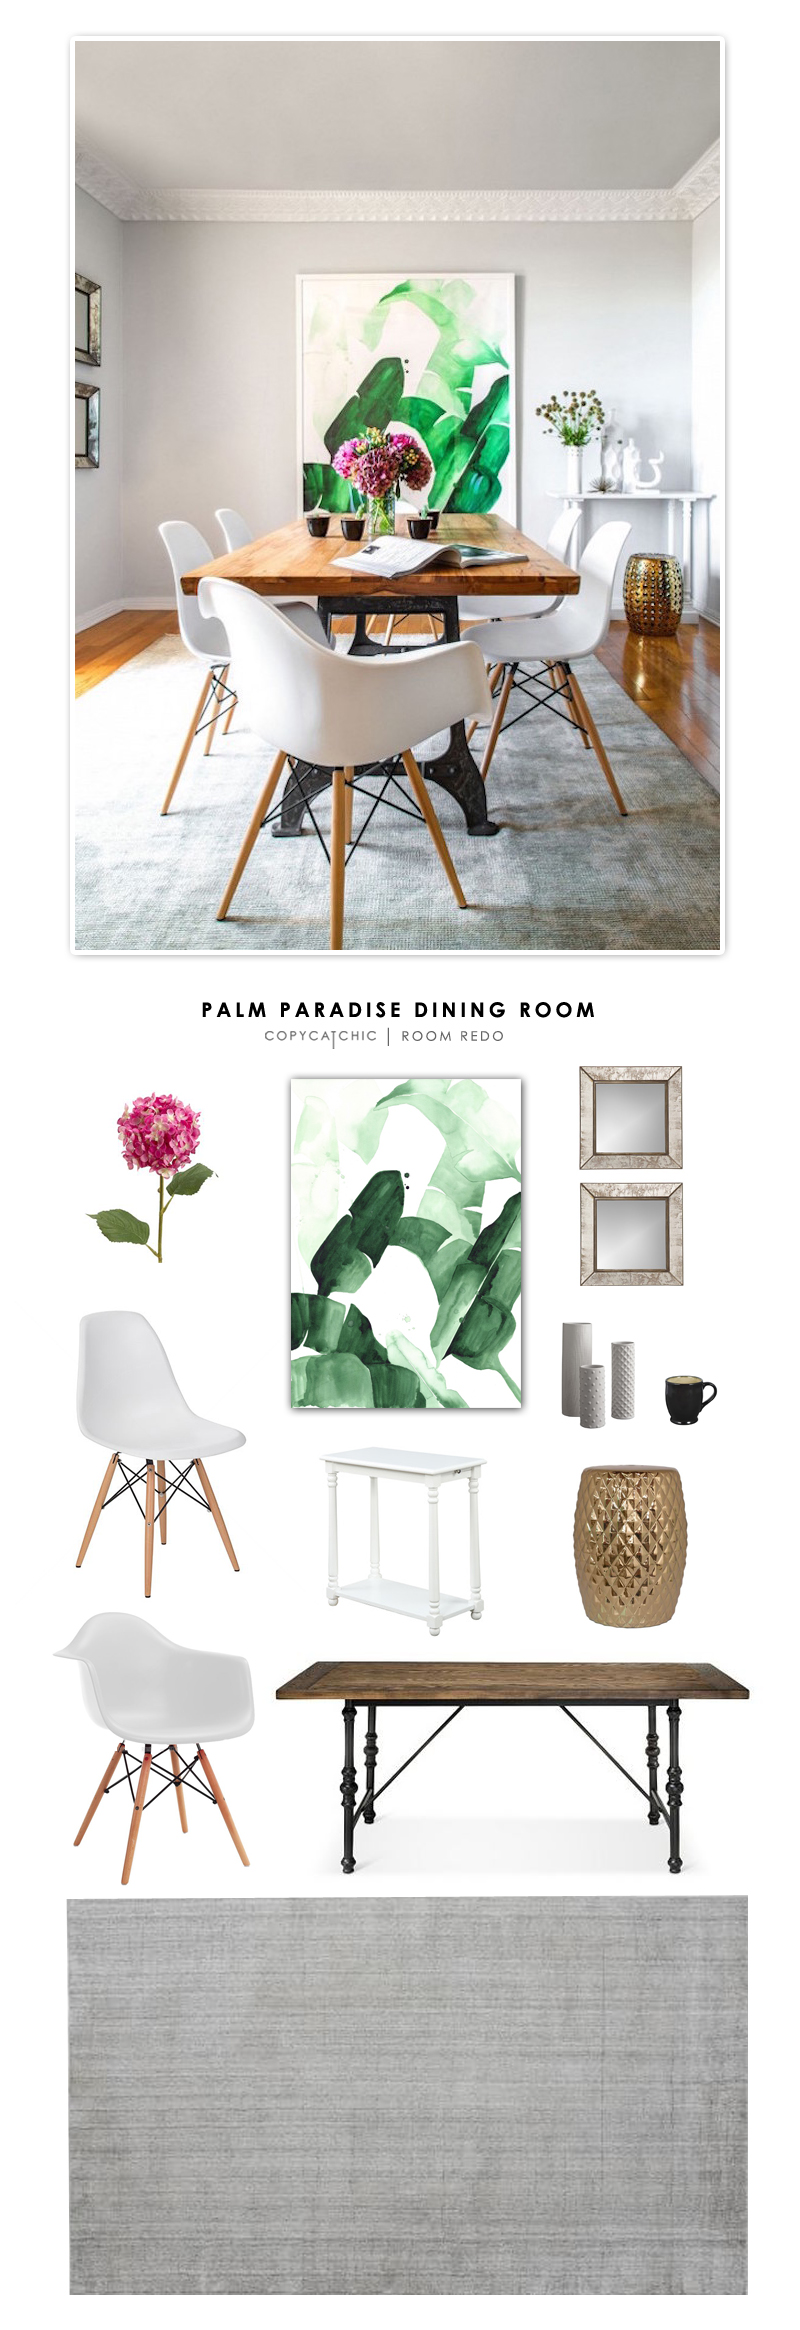 Copy Cat Chic Room Redo | Palm Paradise Dining Room - copycatchic